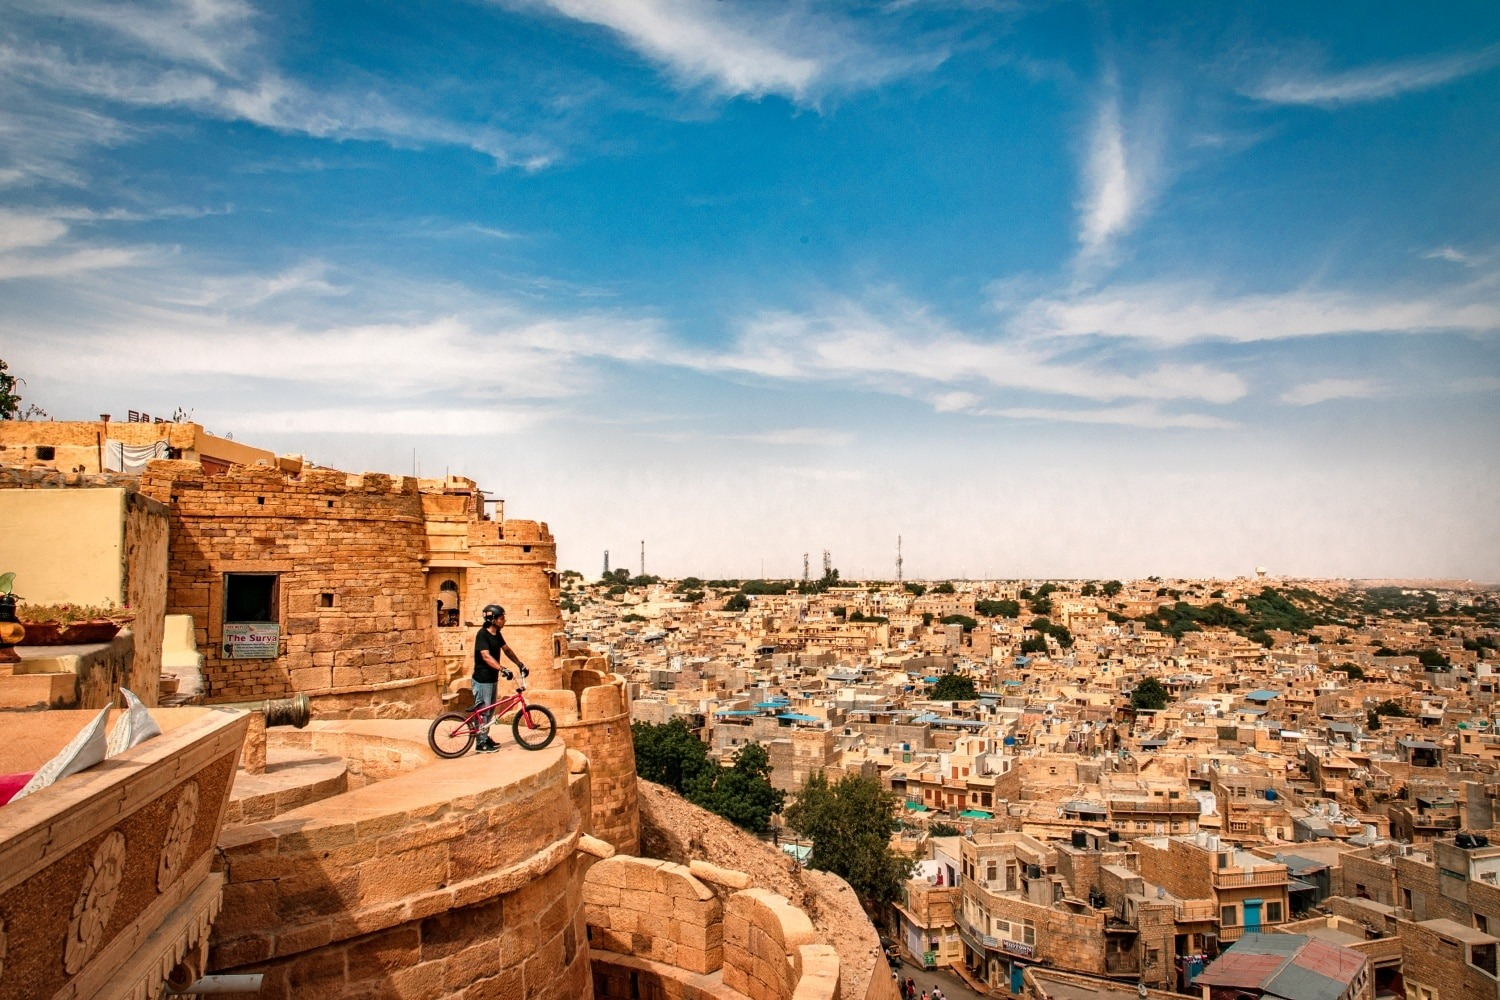 Jaisalmer fort. City view